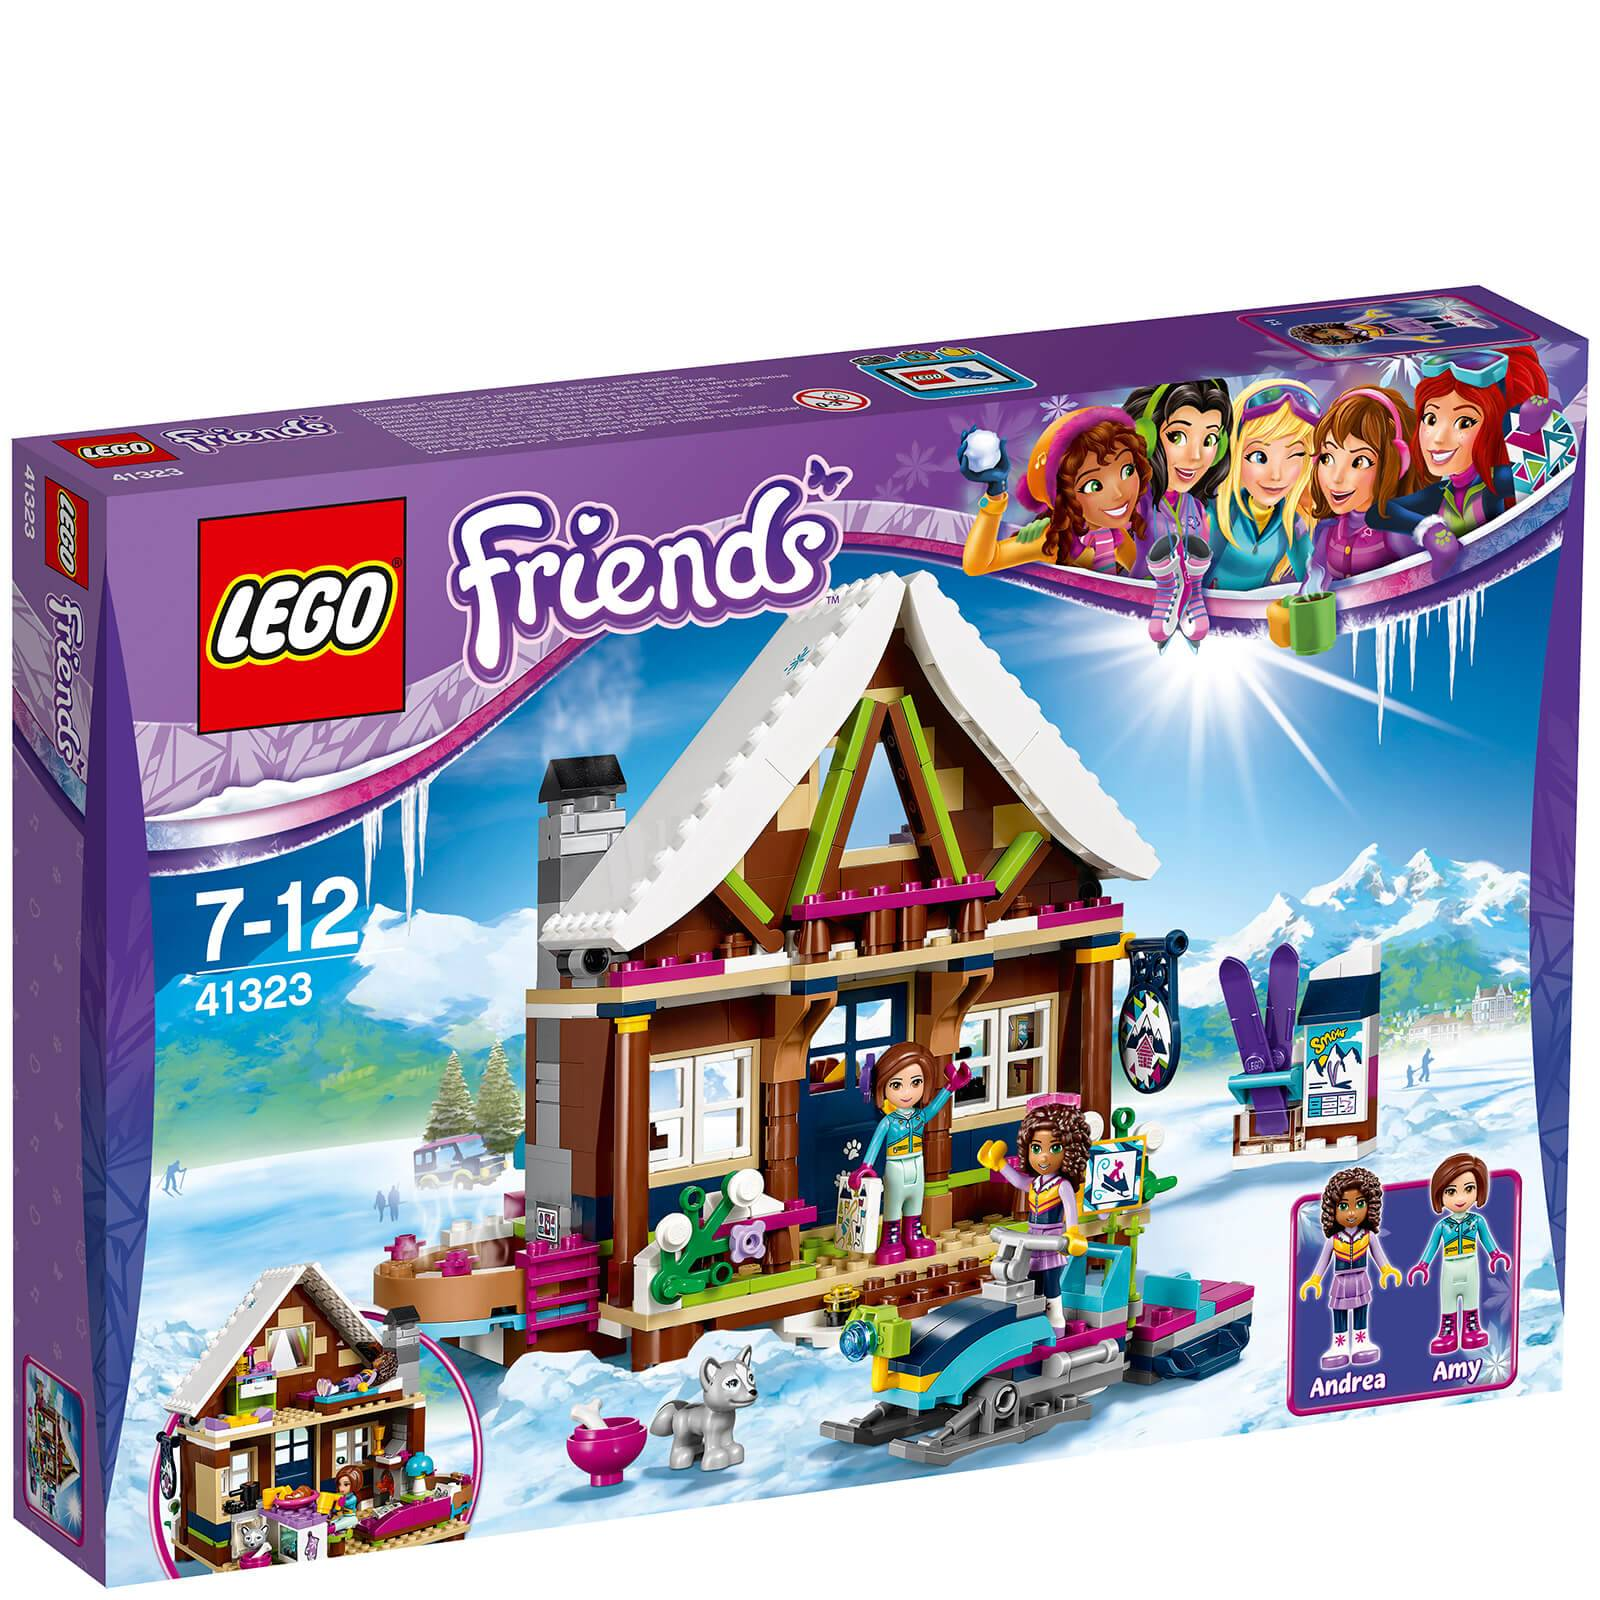 Lego Friends: Winter Holiday Snow Resort Chalet (41323)